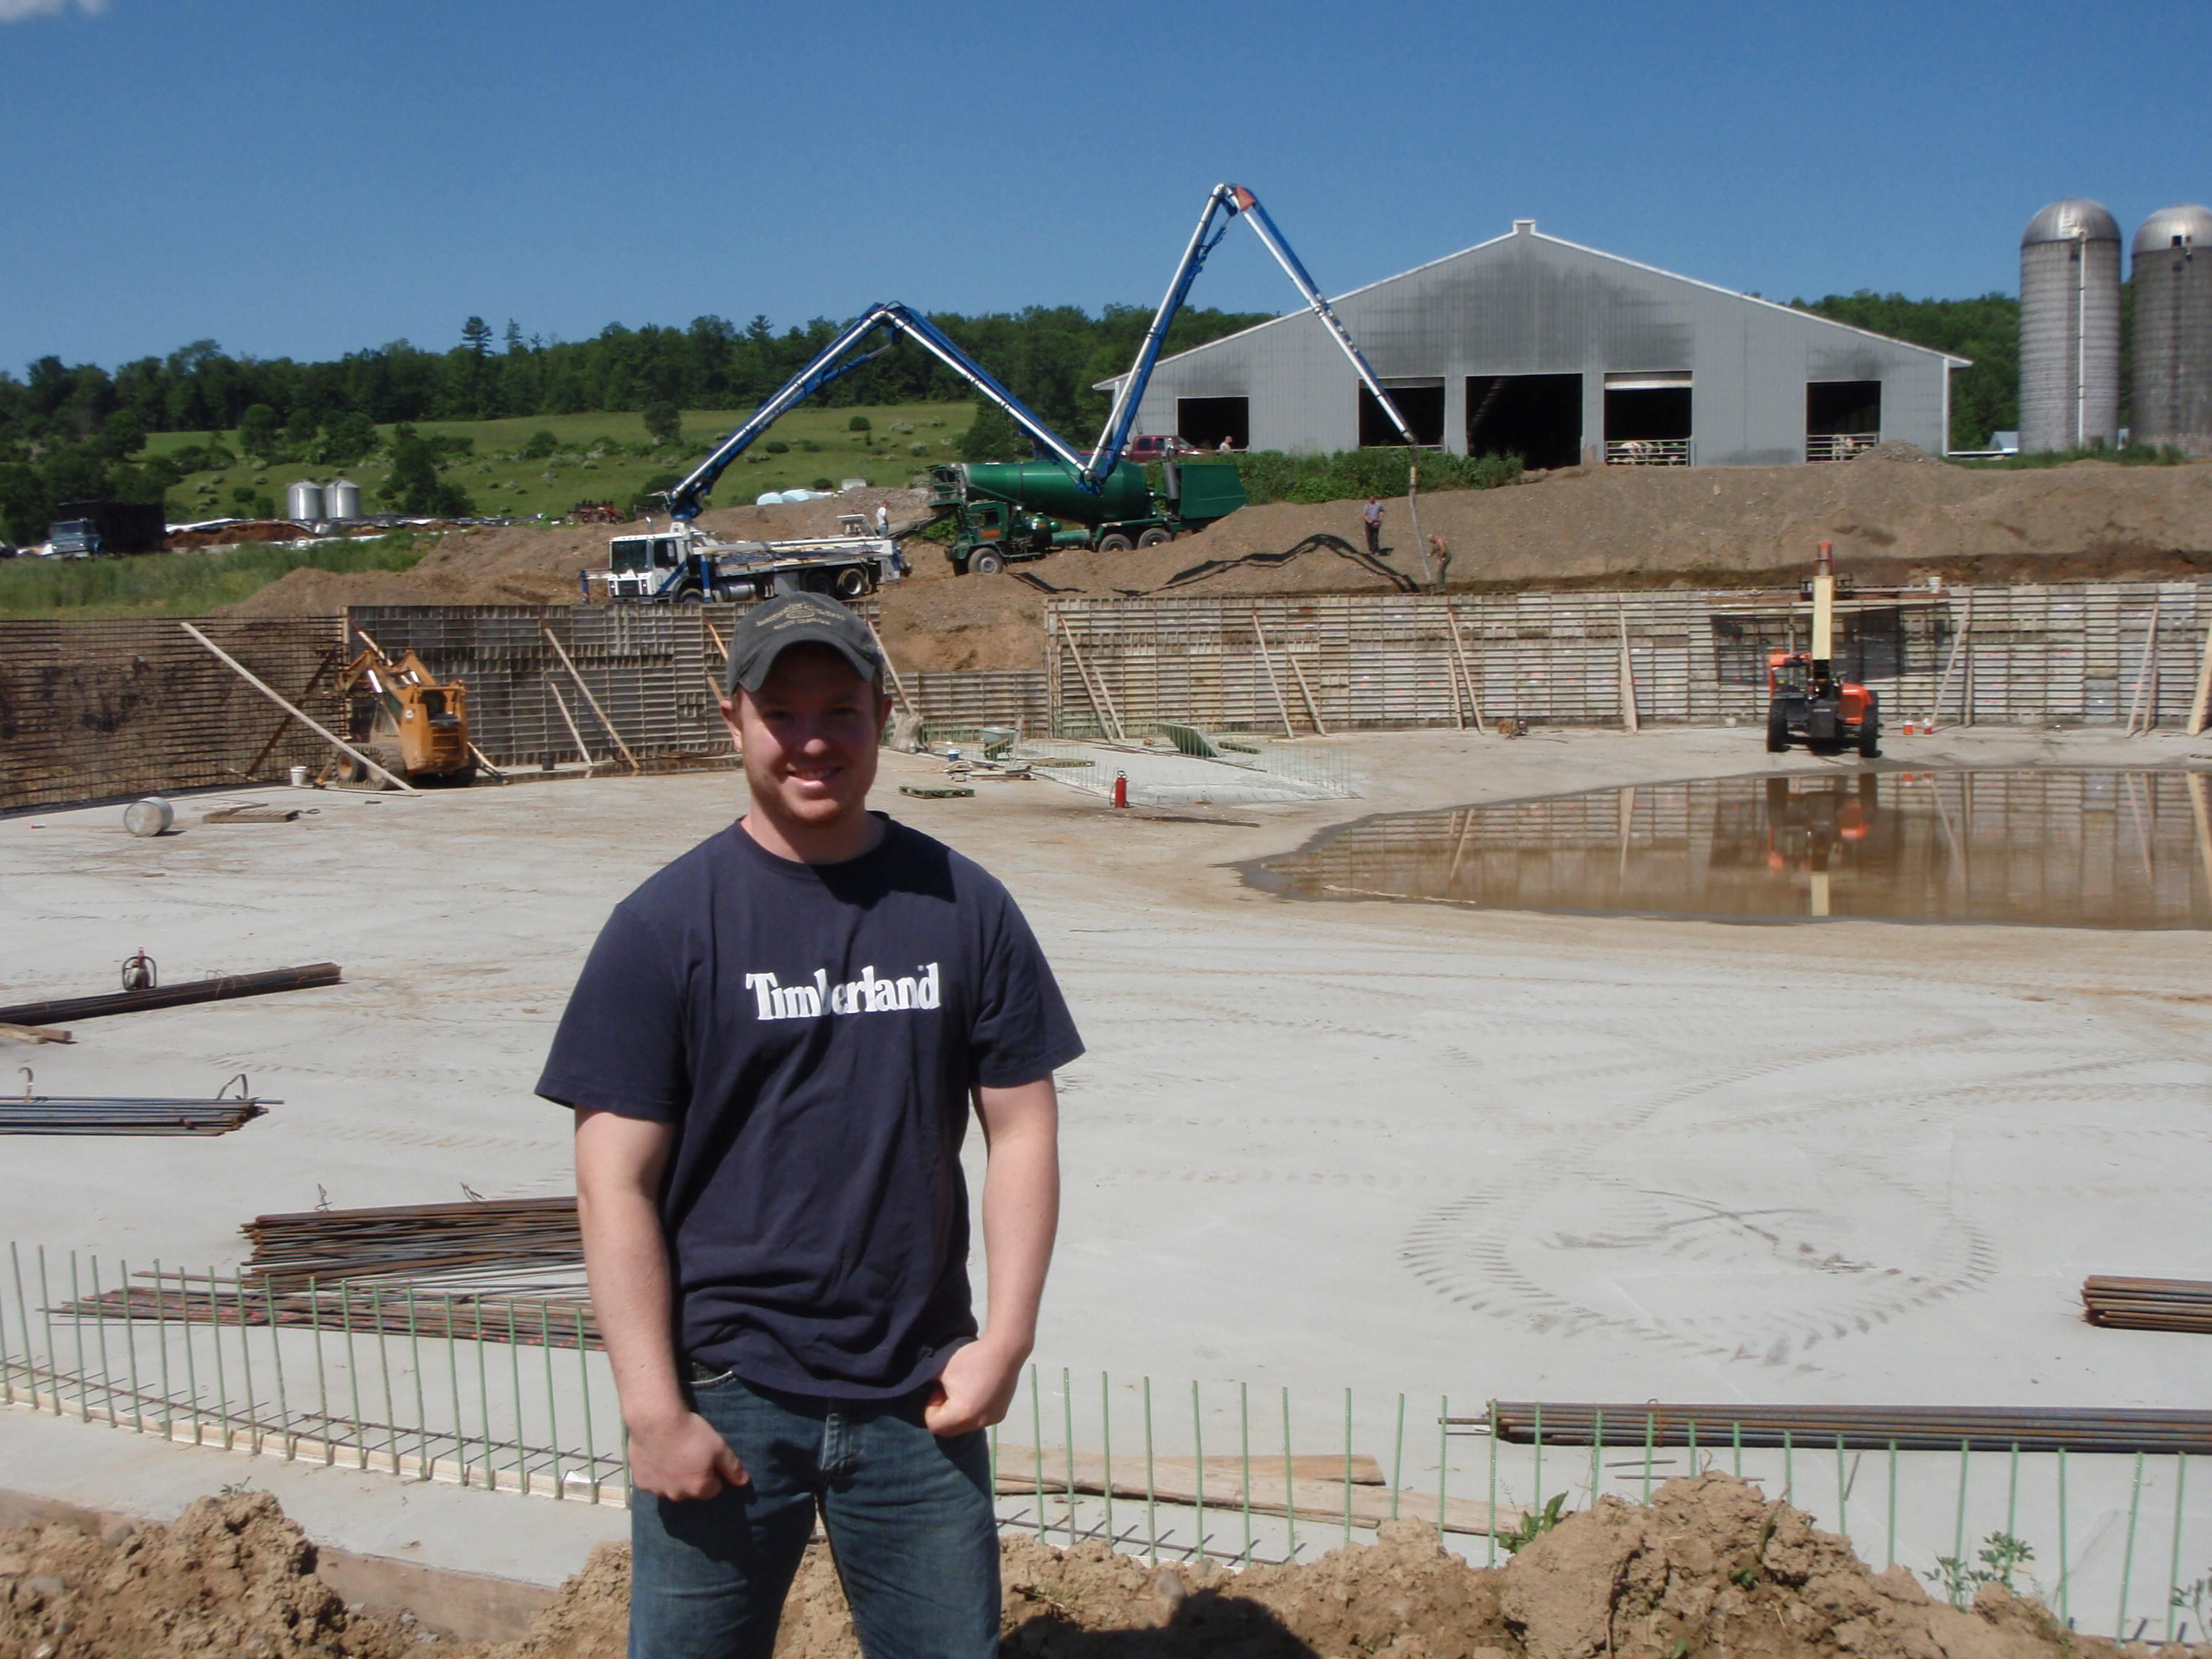 Earth Team Volunteer Derek Walling at a construction site of a waste storage facility. Click image for full screen view